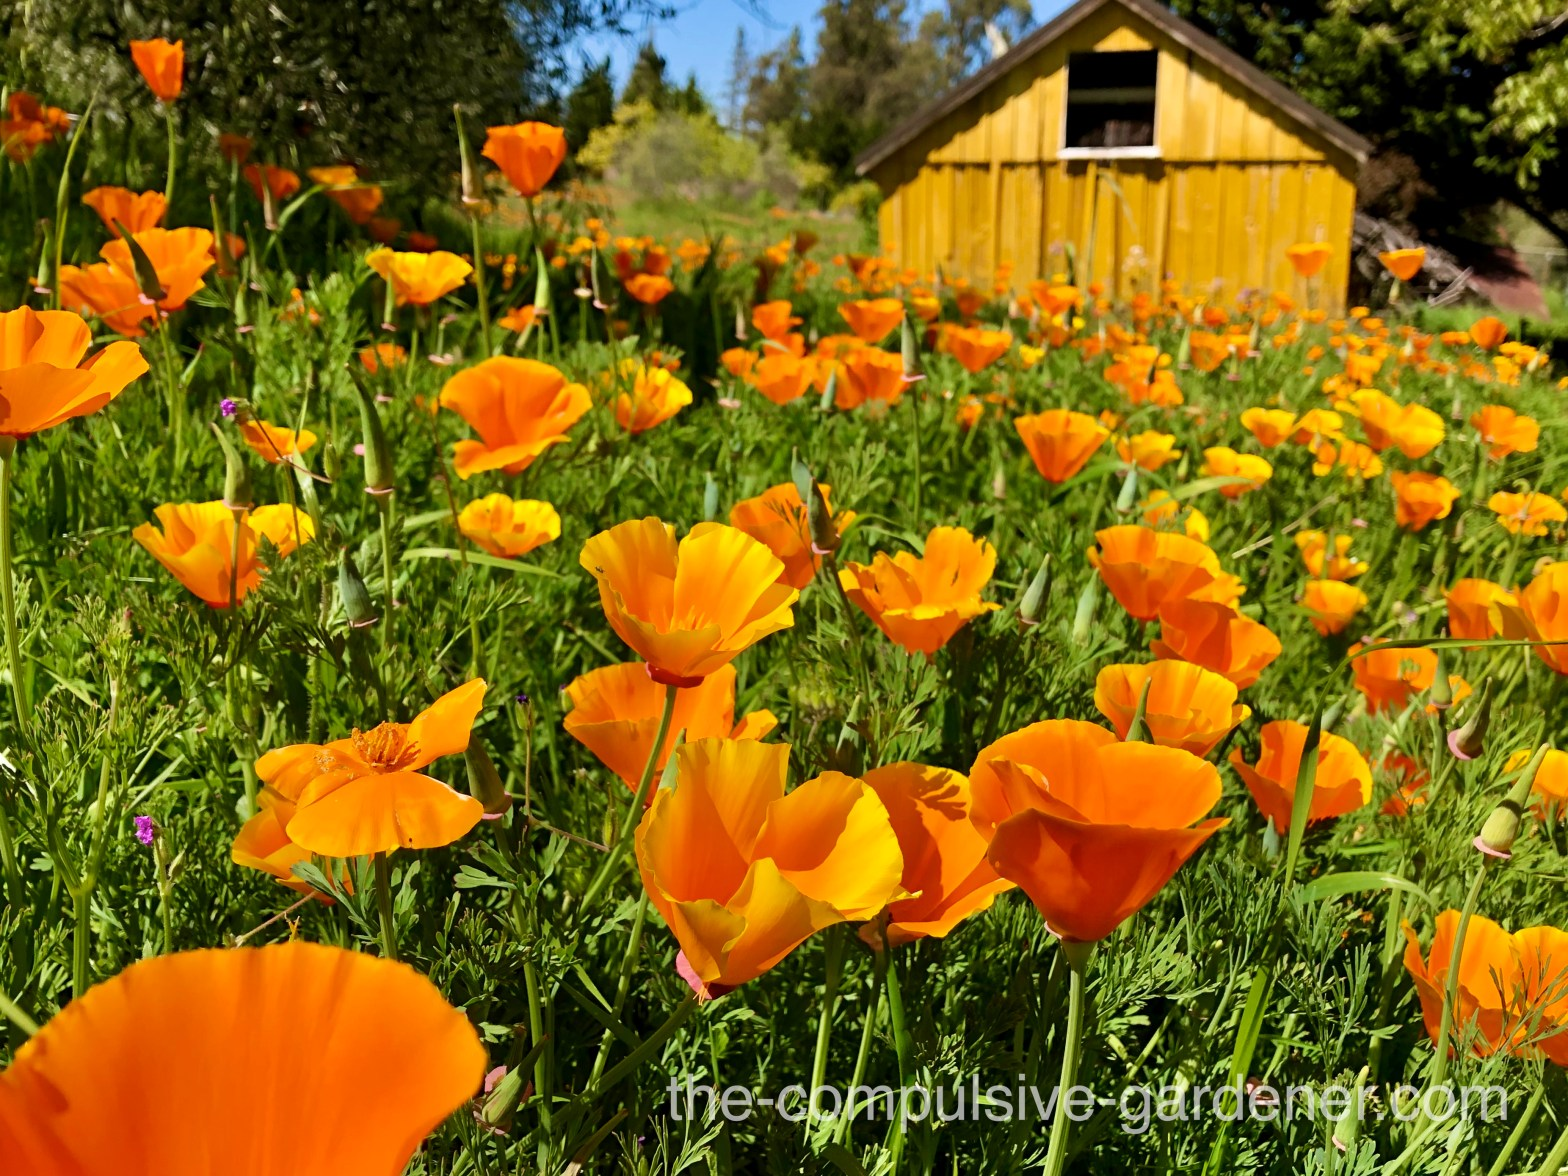 California Poppies and old shed